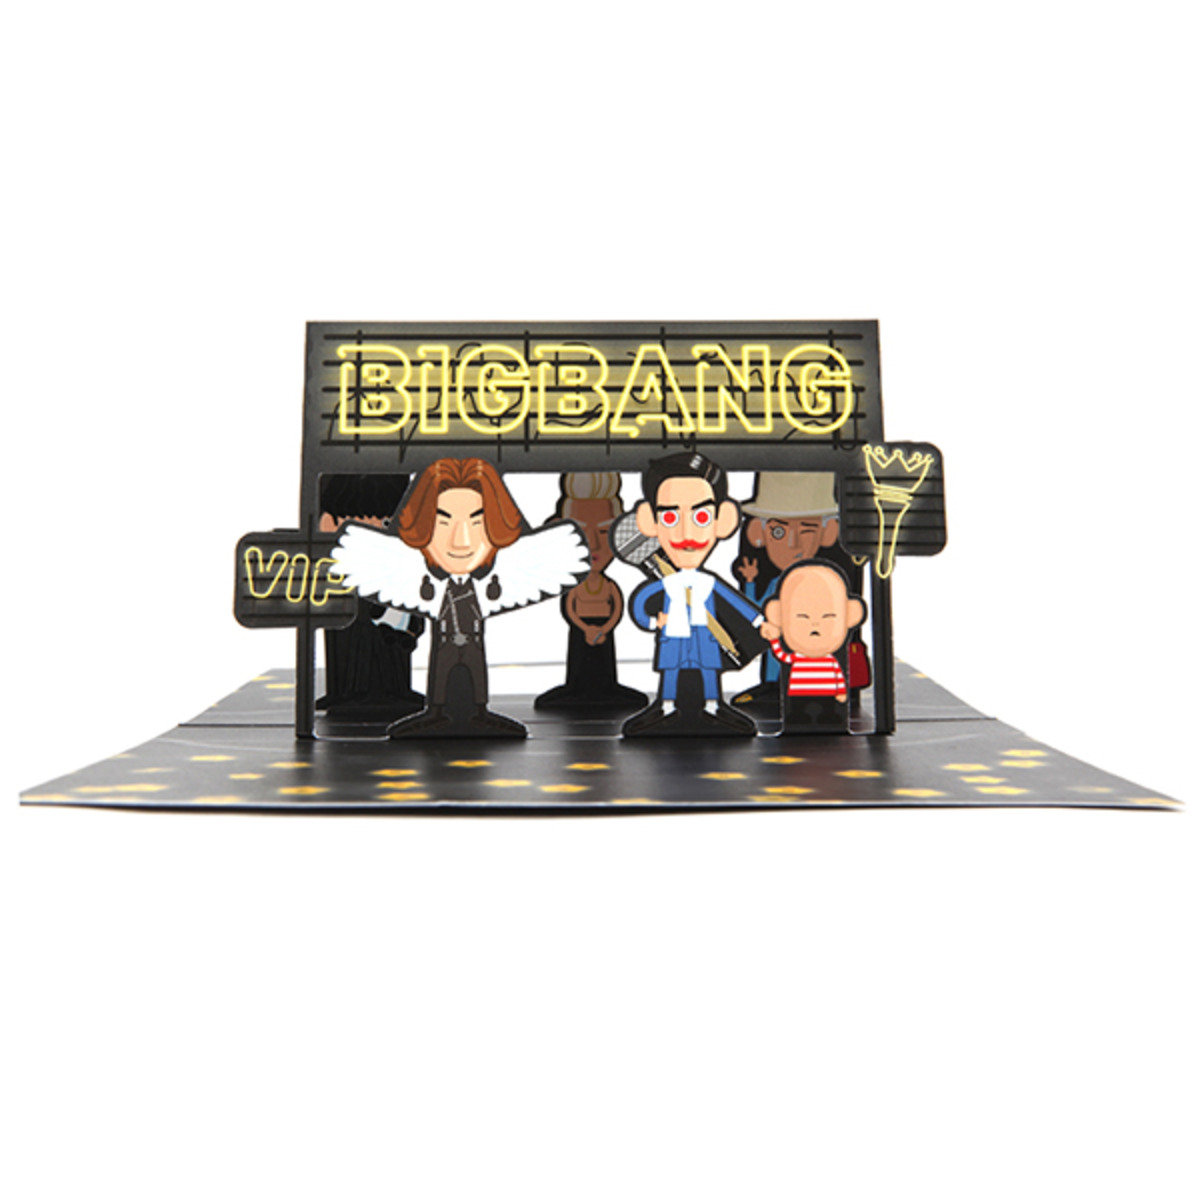 BIGBANG ART TOY POP UP CARD [BIGBANG 2015 ART TOY MD]_GD00018481